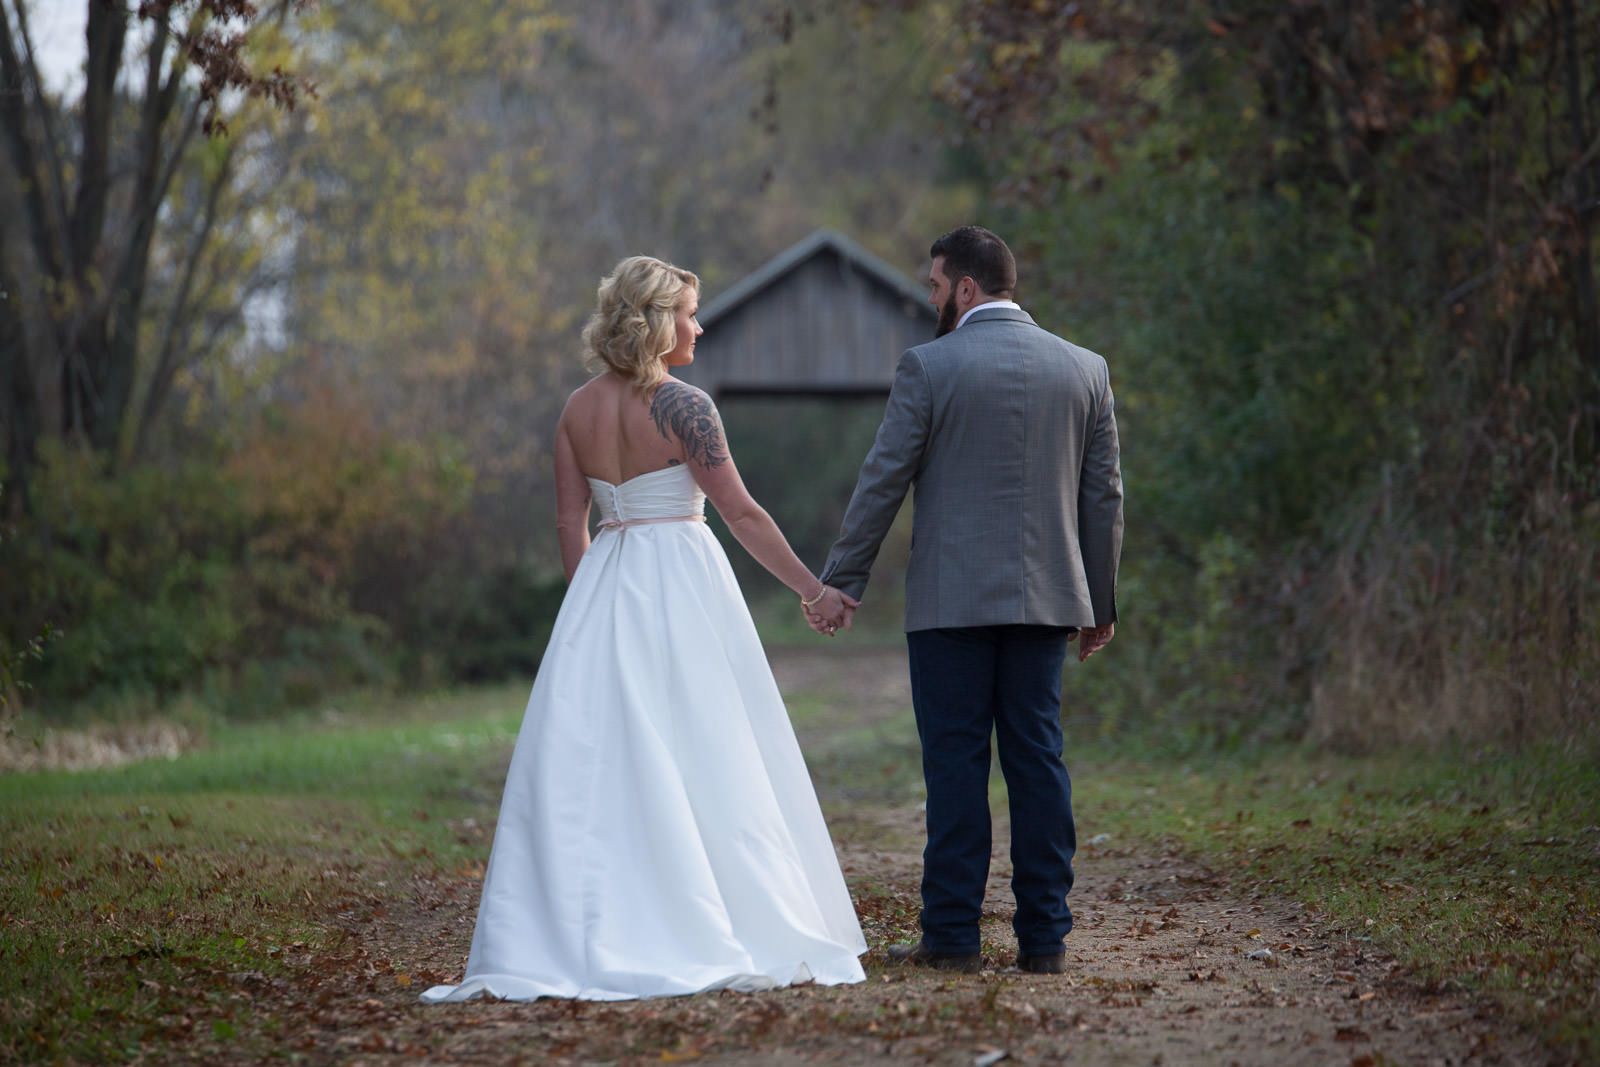 Wedding photography at Williams Tree Farm, Roscoe Wedding Photography,